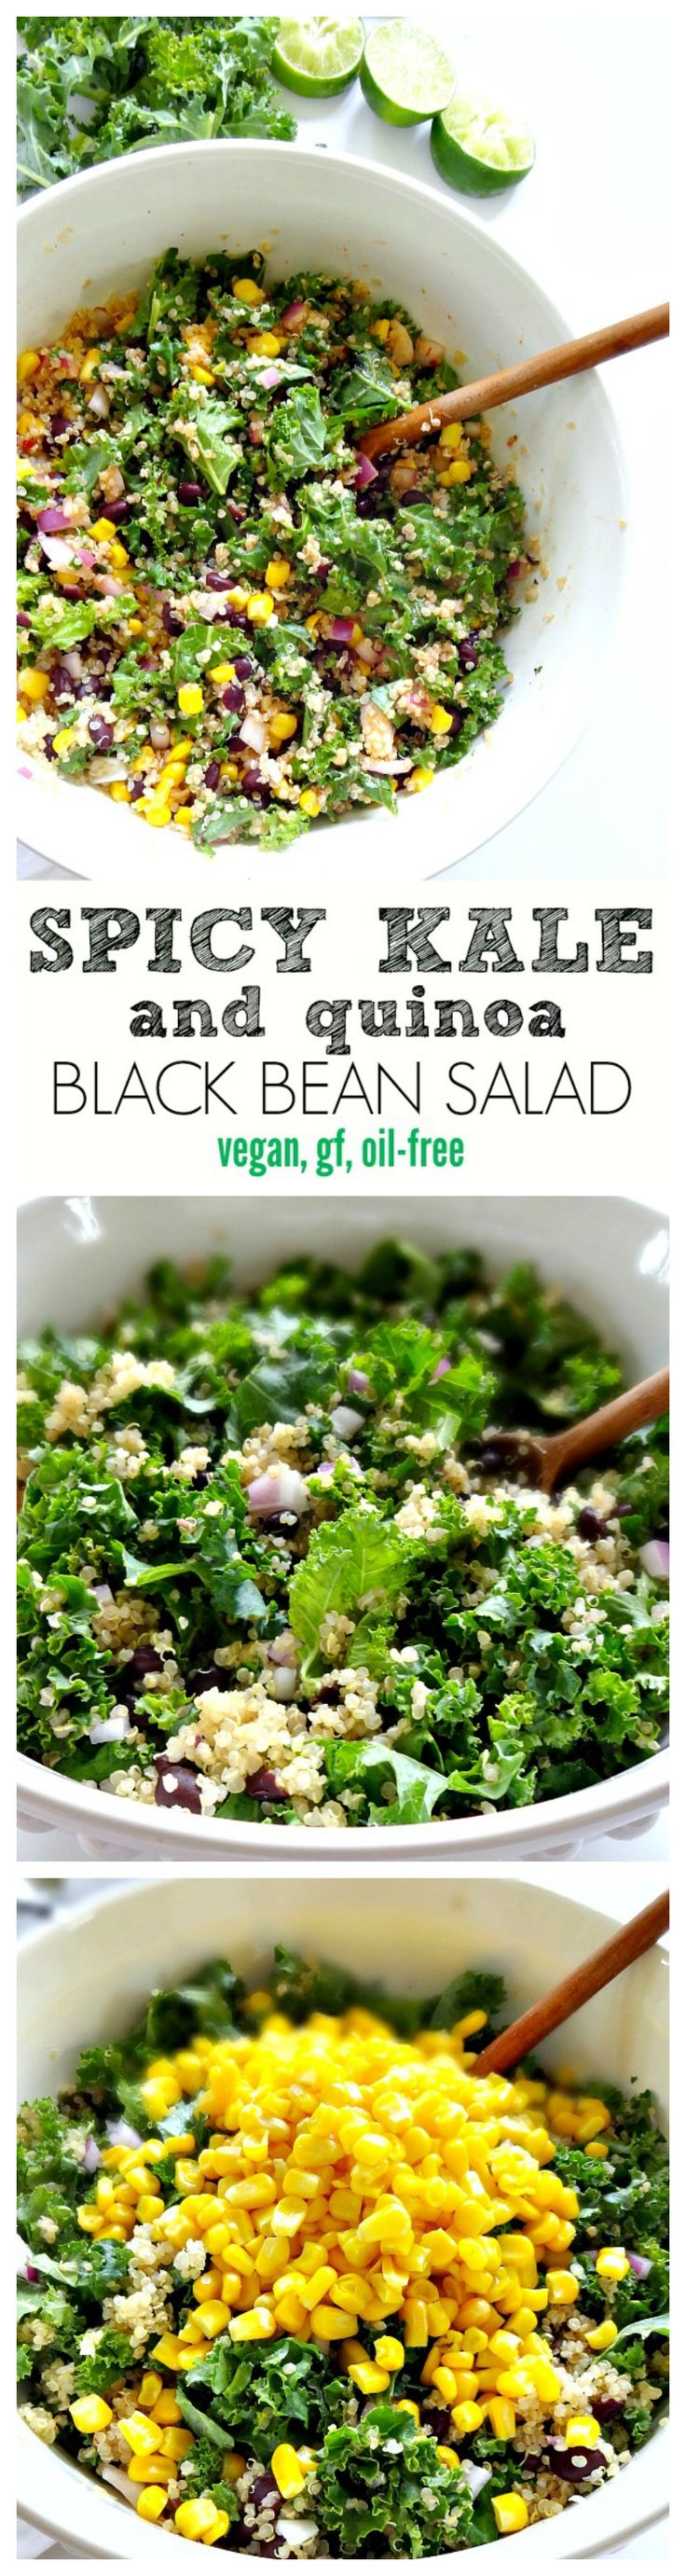 Spicy kale and quinoa black bean salad.